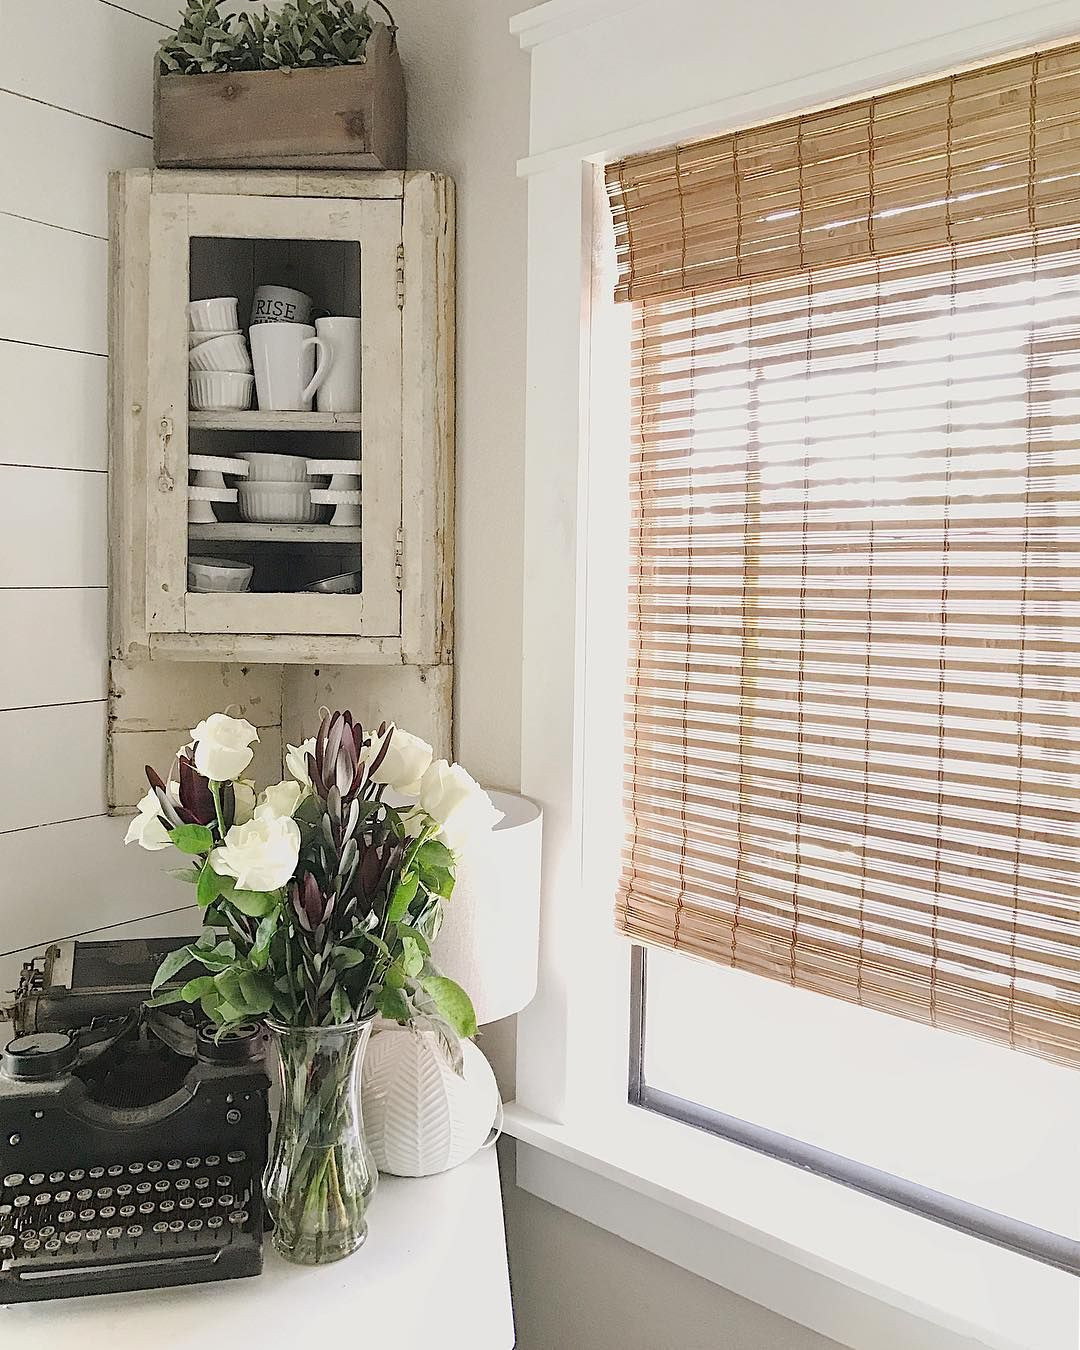 Diy projects for bedroom pinterest pin by dona bryant on farm house  pinterest  farm house diy